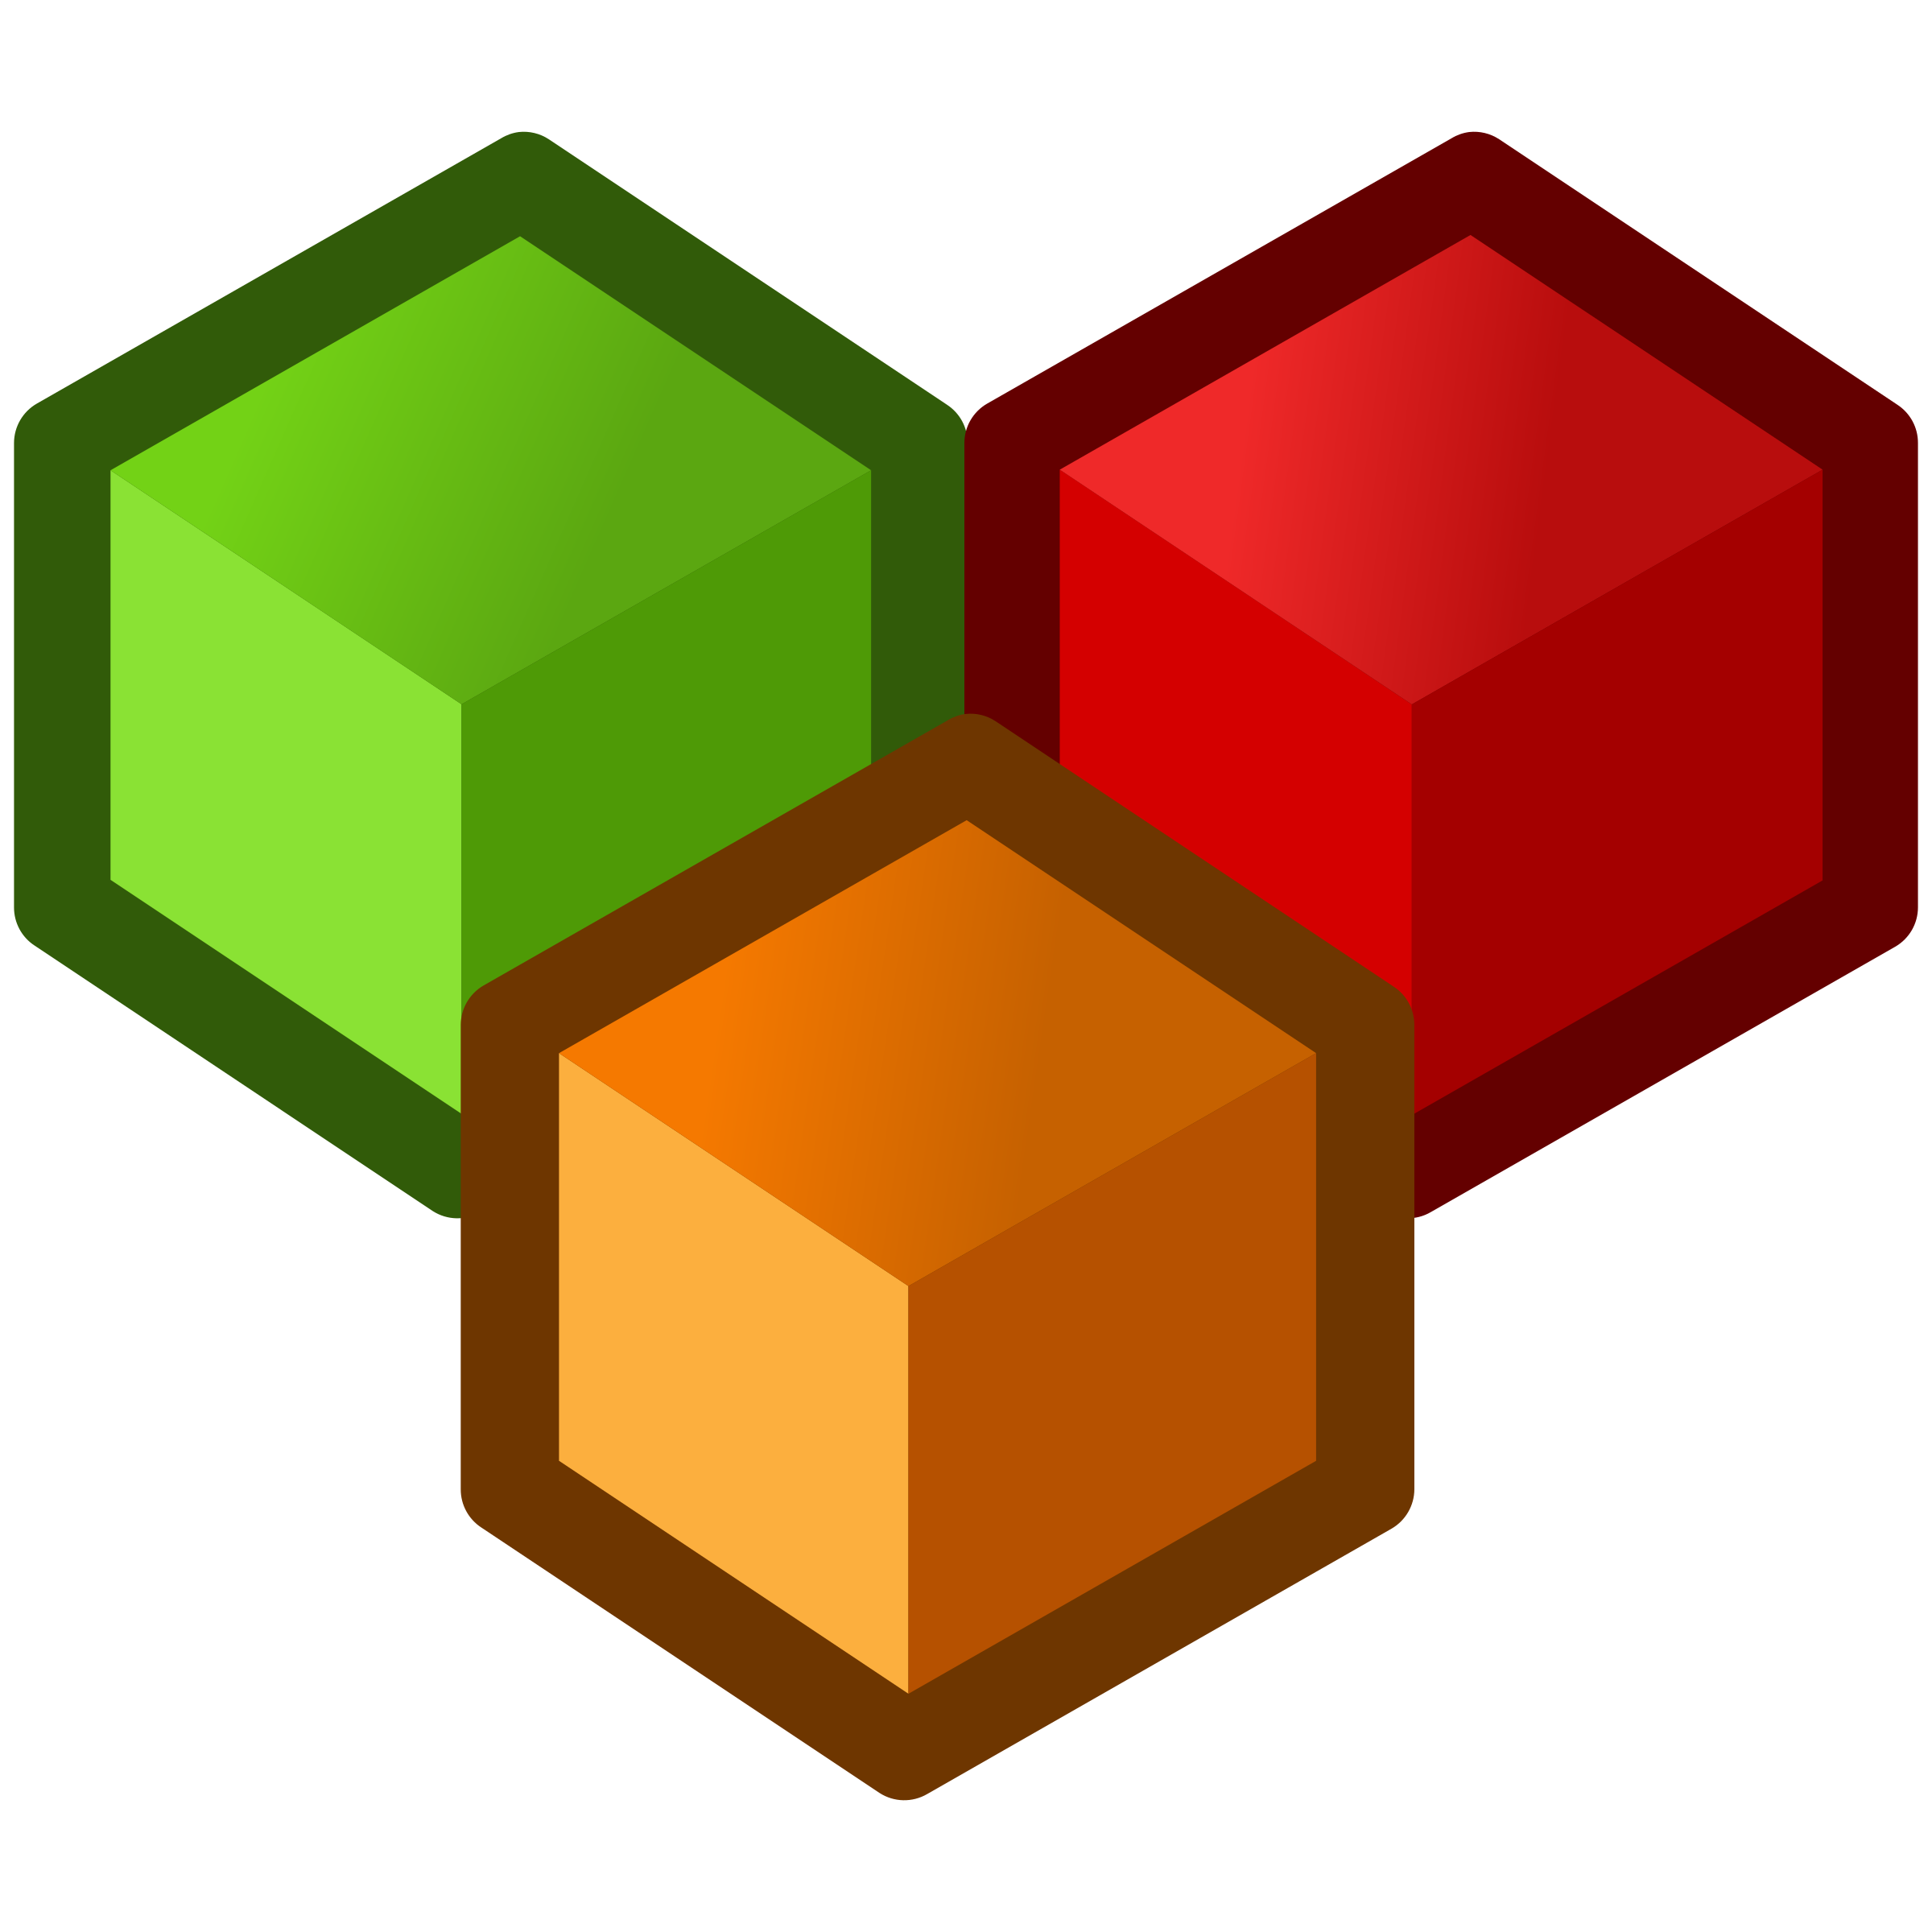 icon_cubes by jean_victor_balin